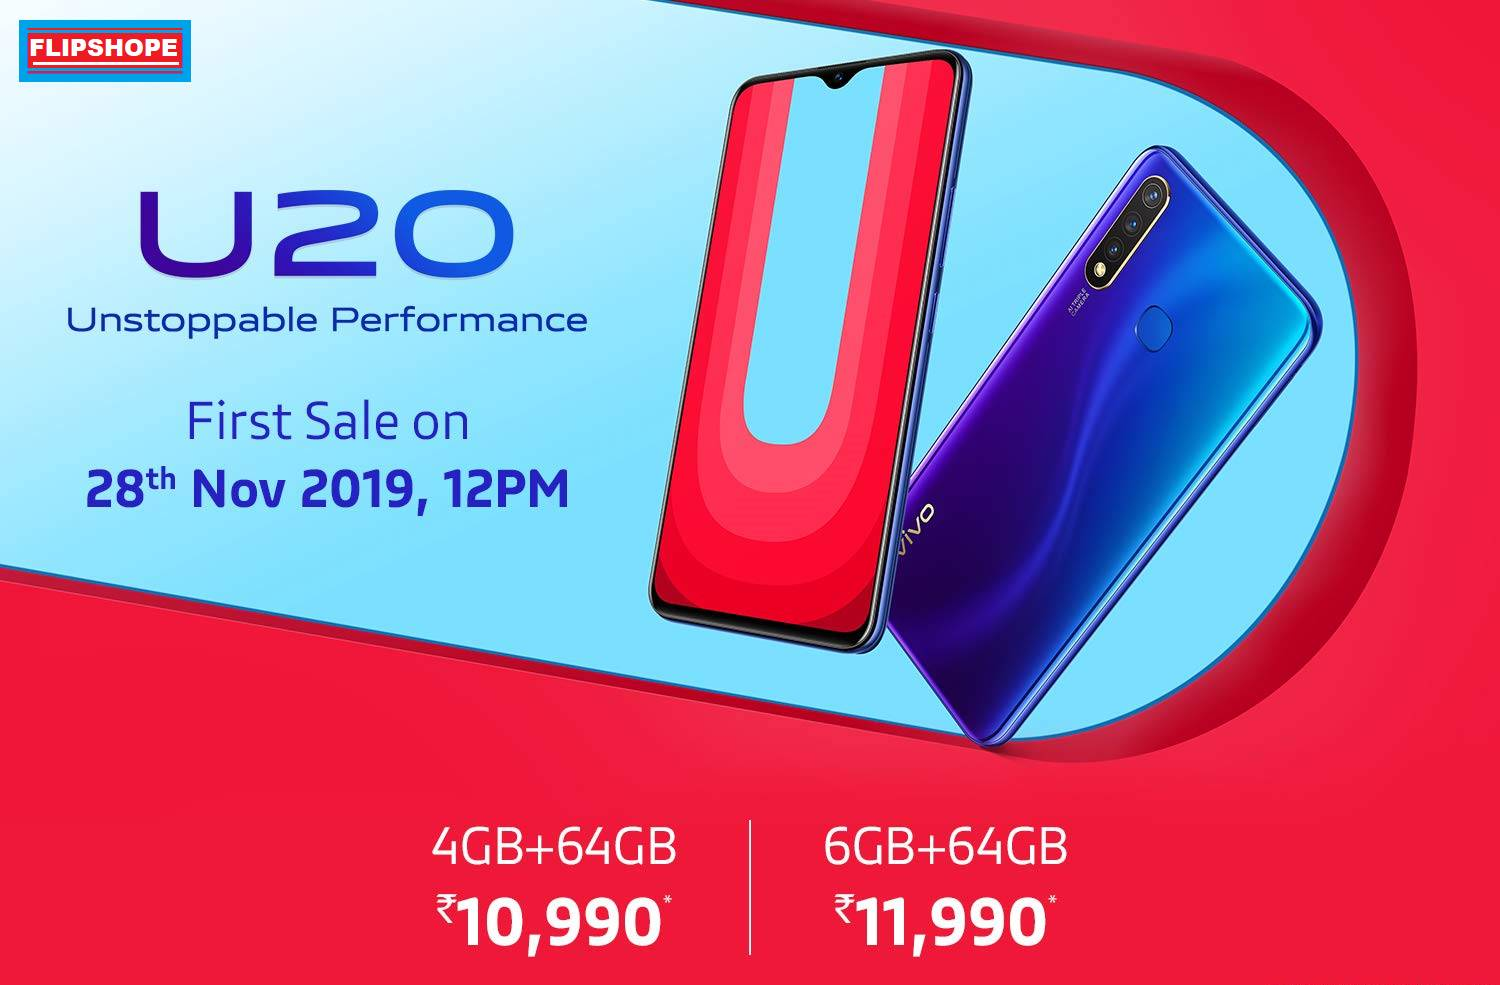 Vivo U20 Price in India, Specifications, Launch date